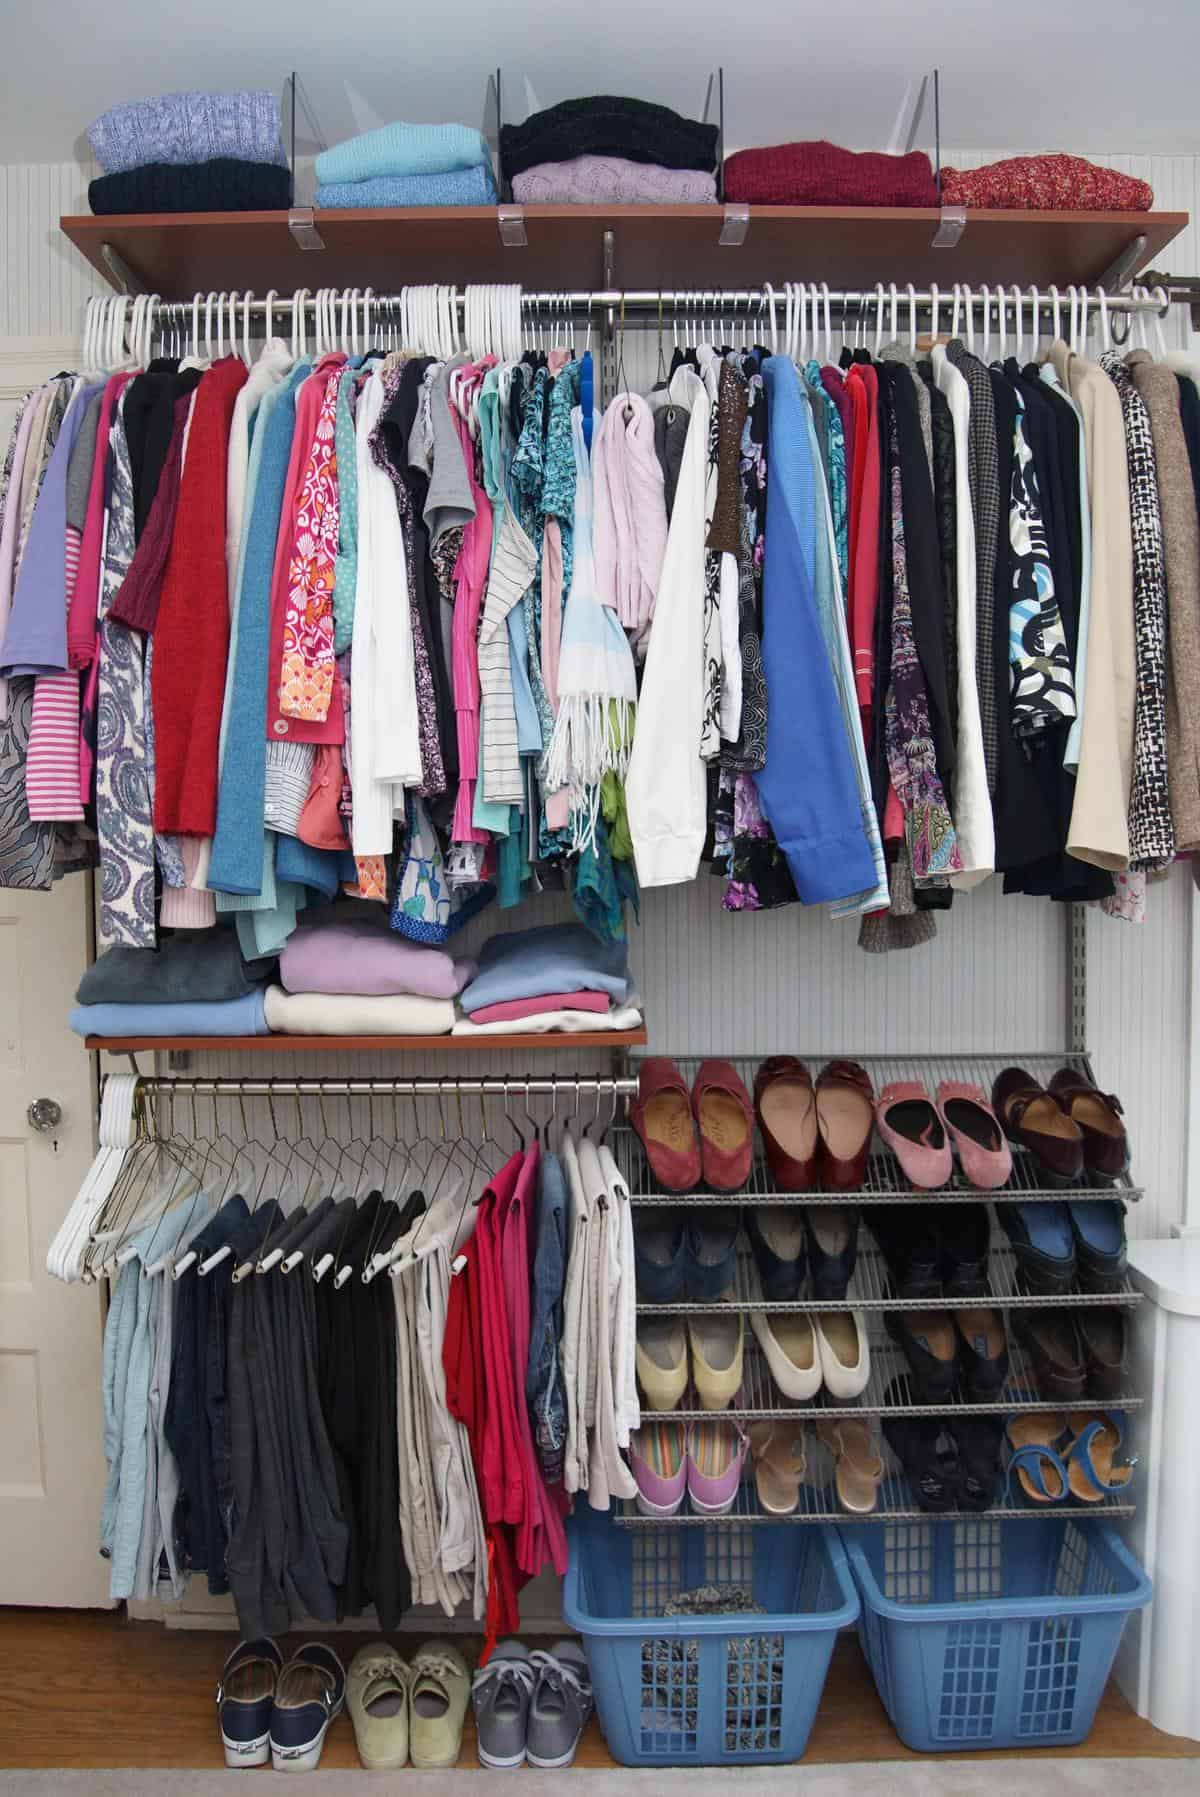 How To Organize Closet organizing the master closet {11 closet tips} | heartworkorg